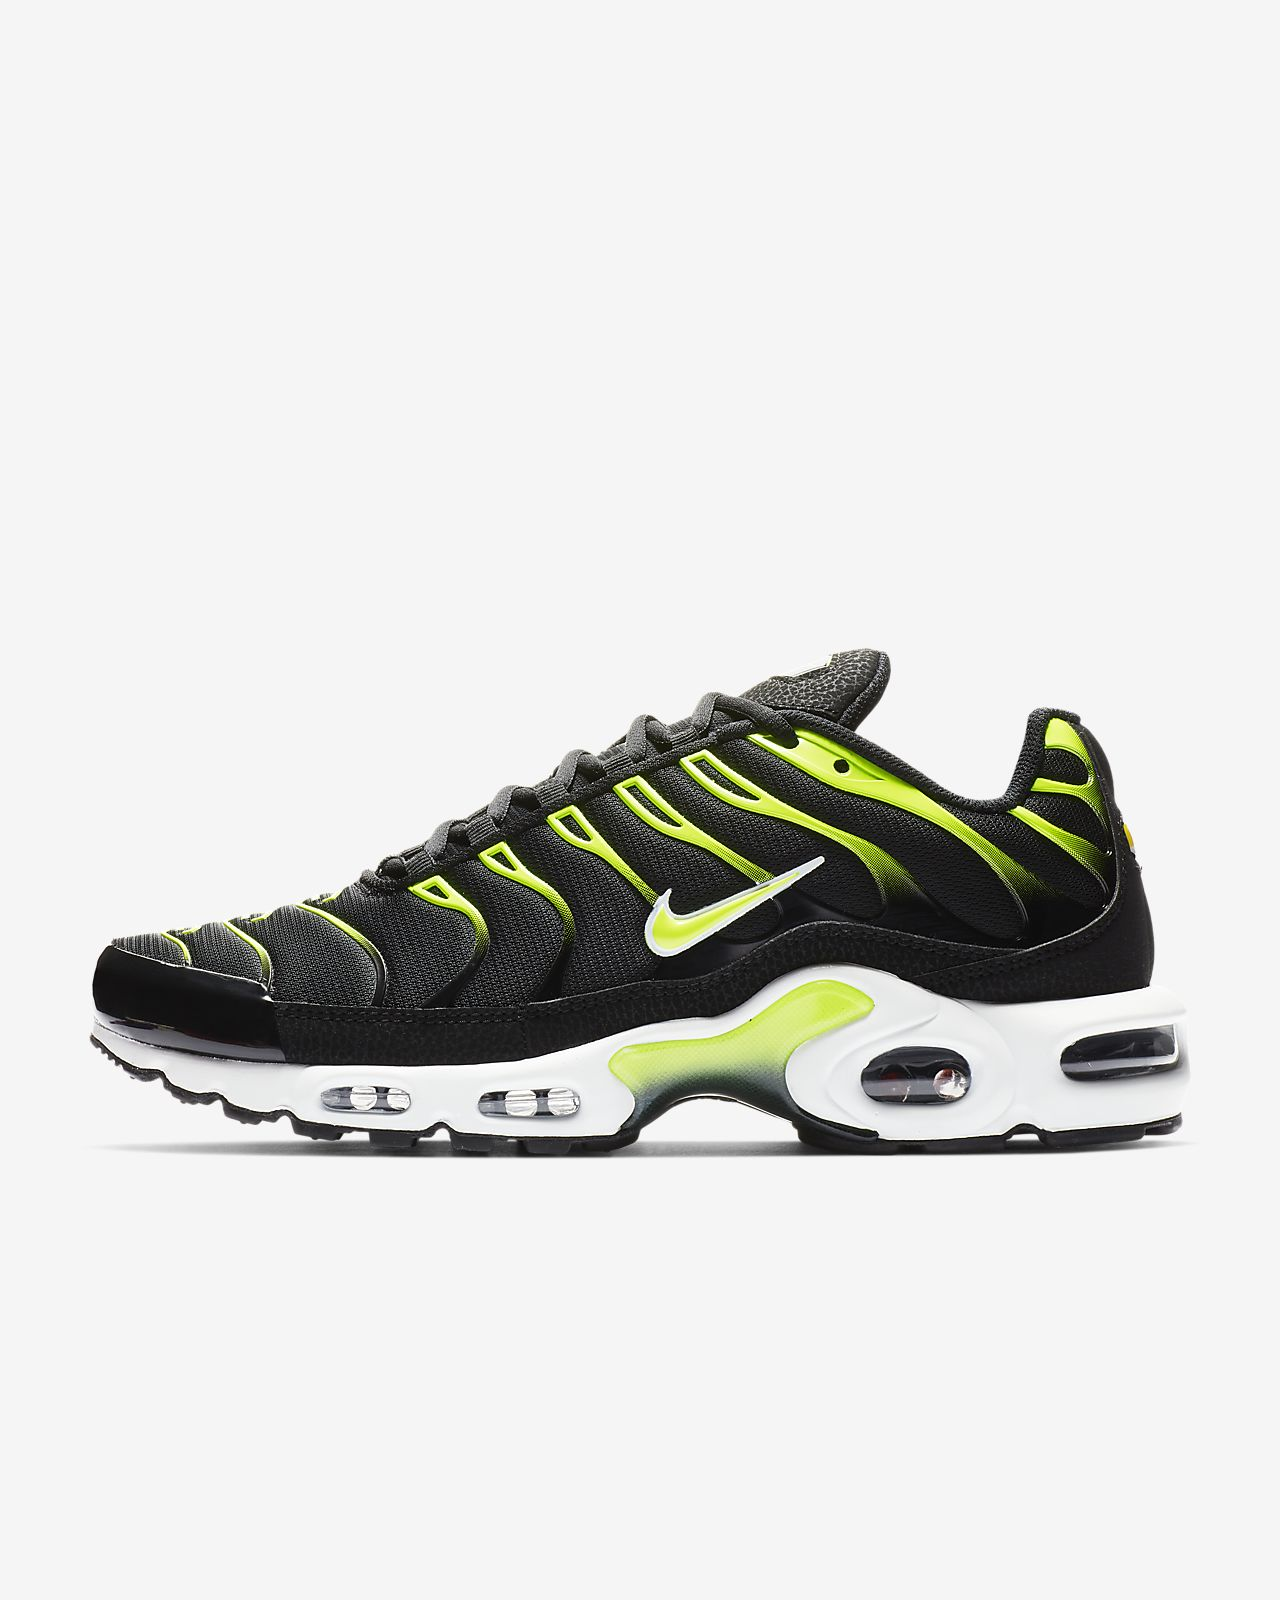 brand new 3b997 593ce ... blanco negro 52630010 a5756 03941  switzerland calzado para hombre nike  air max plus fb2cb 0b1ae